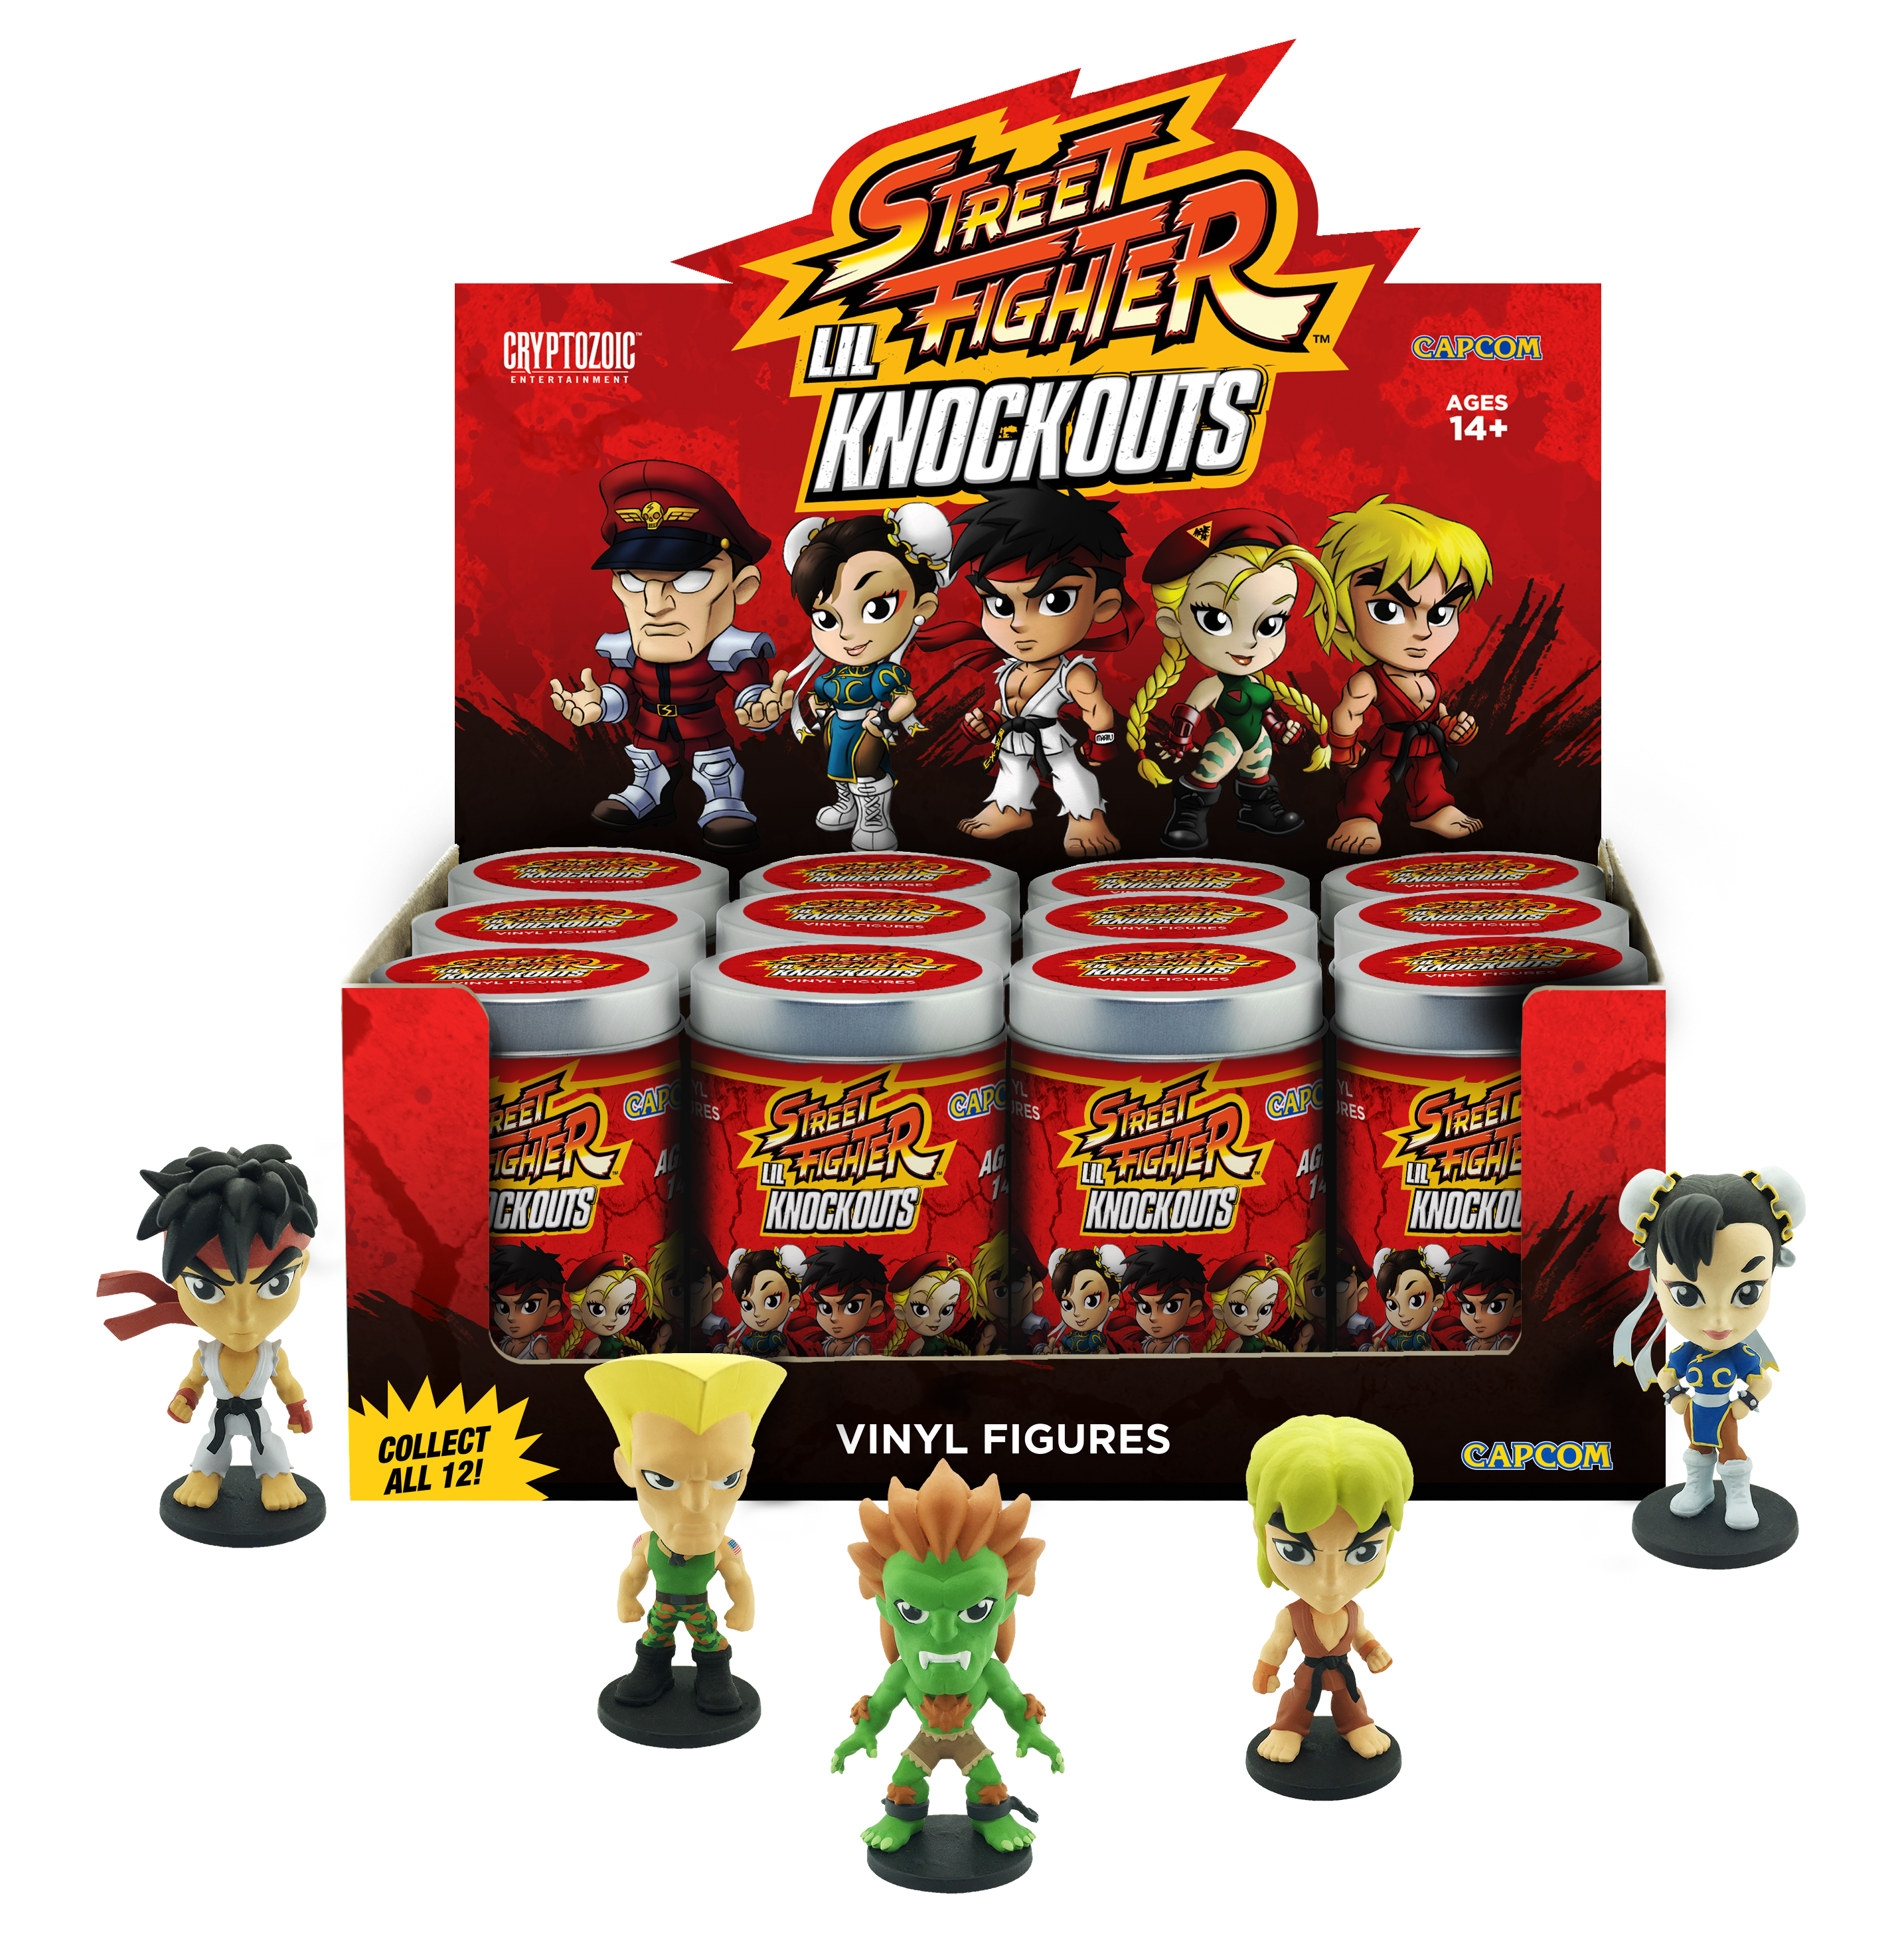 Street fighter ko png. Lil knockouts series cryptozoic